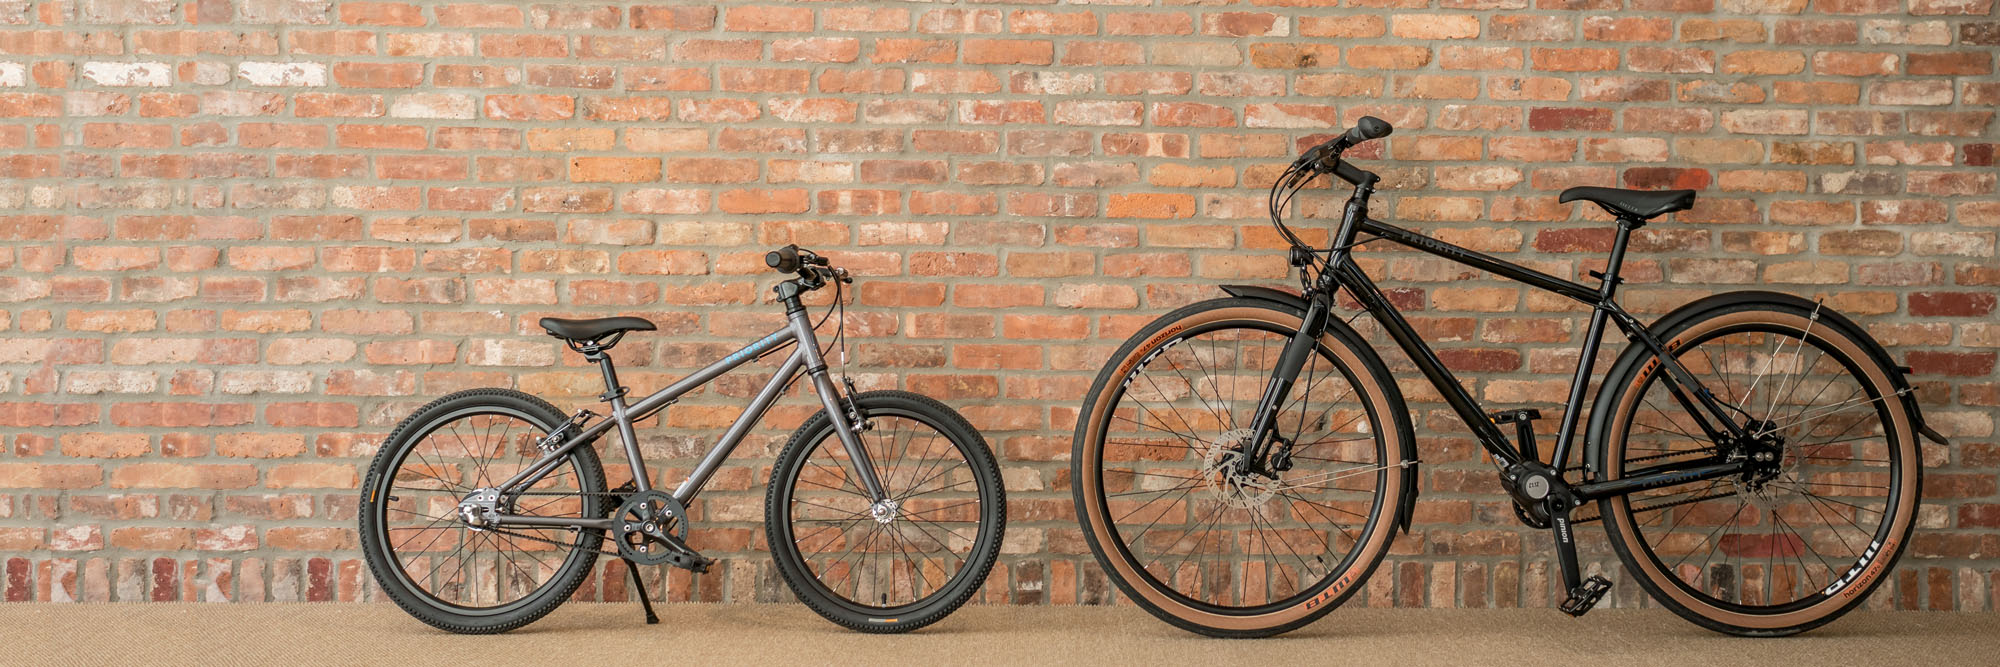 "<a href=""https://www.prioritybicycles.com/blogs/priority-profiles/our-escape-from-new-york-to-the-sound-view-greenport"" target=""_blank""> <img src=""https://cdn.shopify.com/s/files/1/1245/1481/files/sound-view-Homepage-text.png?4894925455121238060"" alt=""Priority Specials""></a>"